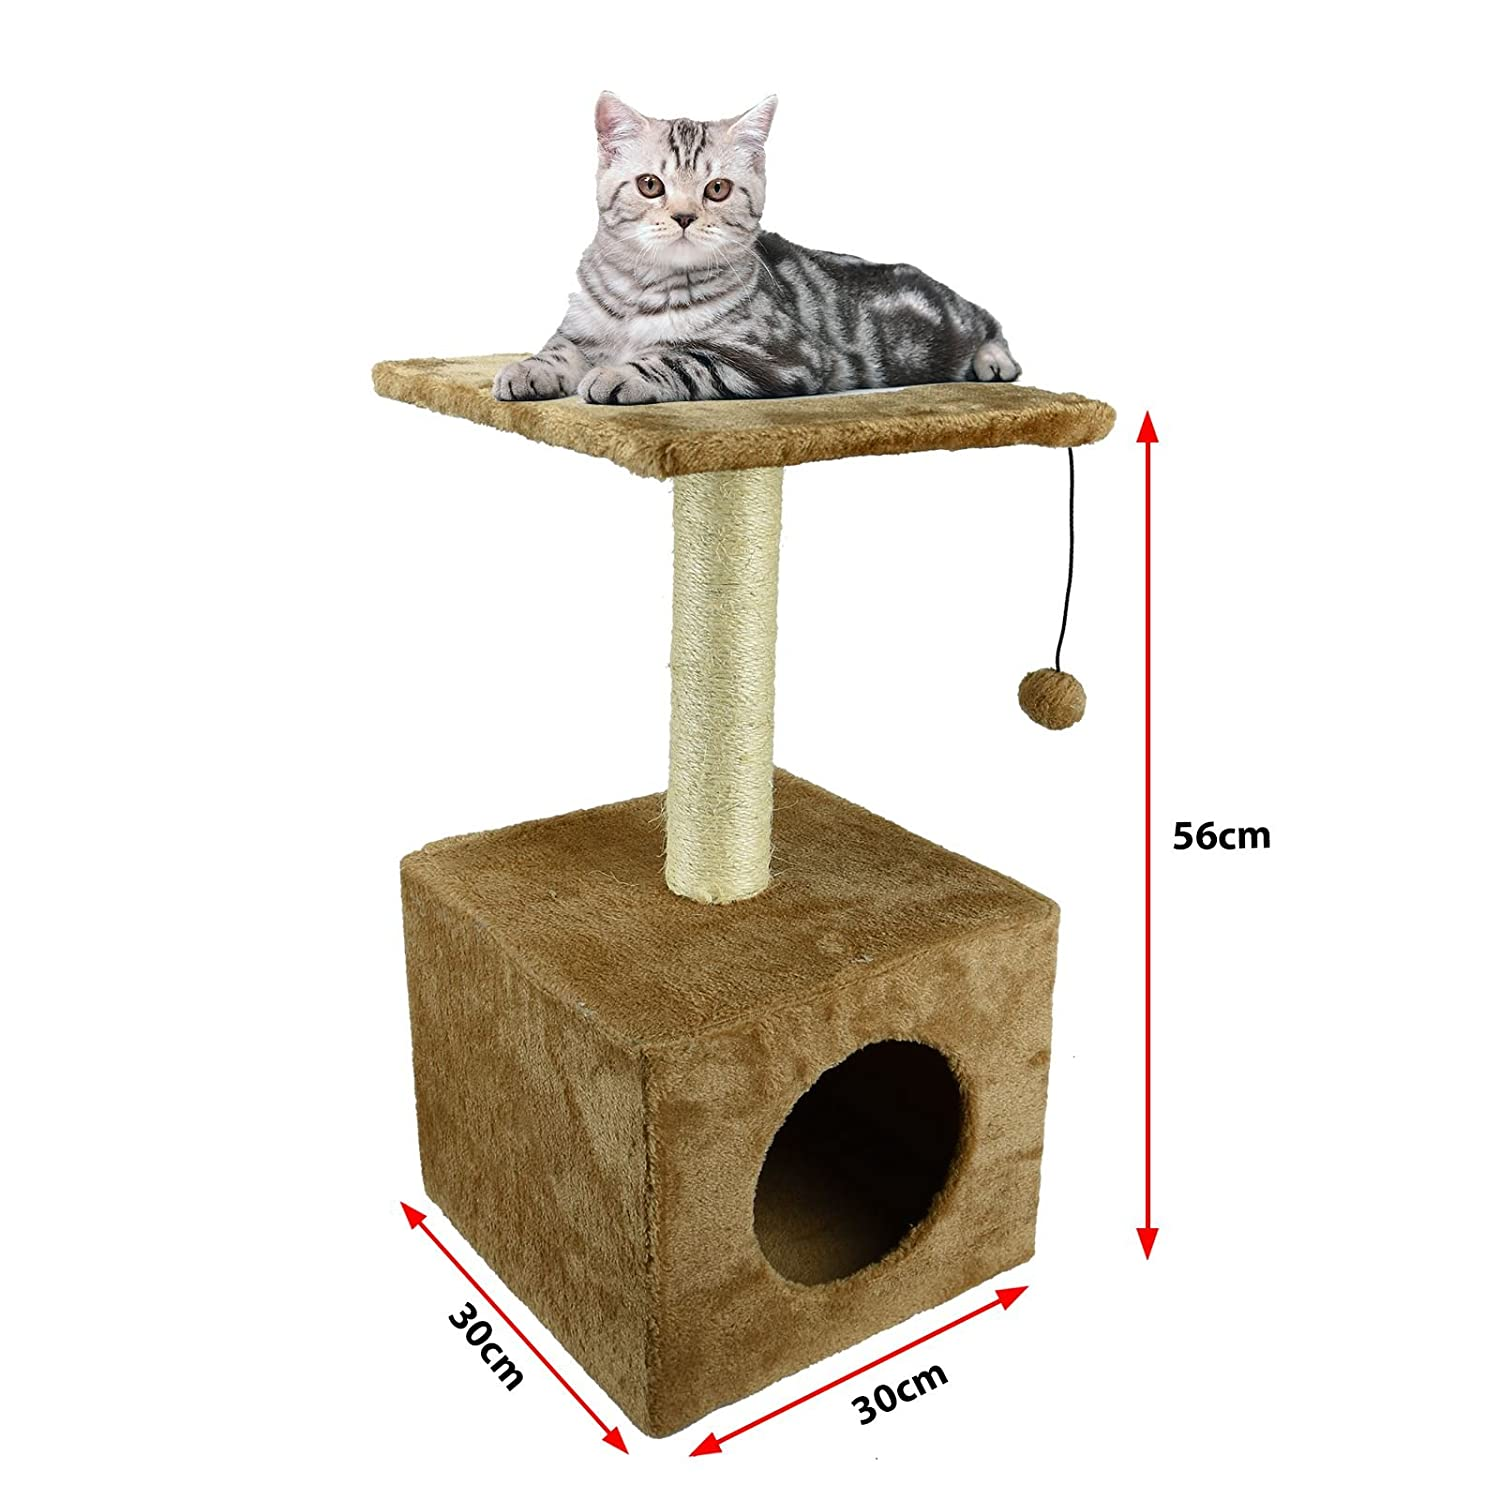 Brown ASAB Pet Cat Climbing Tree Play Furniture Kitten Resting Box Bed Home Platform Scratching Post With Hanging Soft Ball Toy